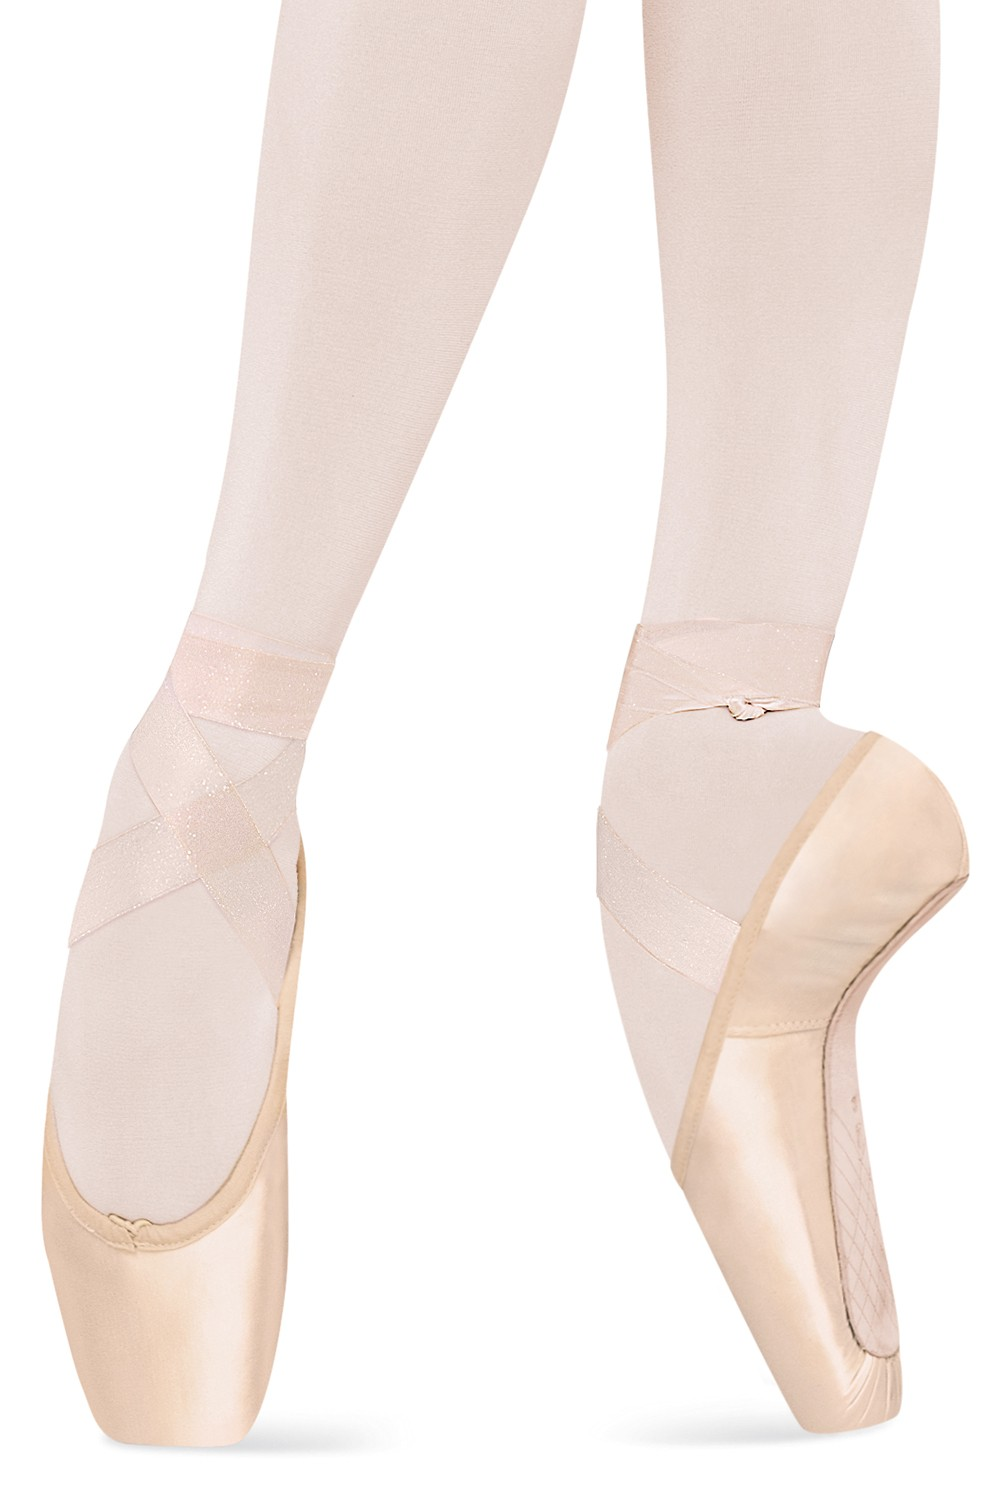 Sheer Stretch Ribbon Dance Shoes Accessories